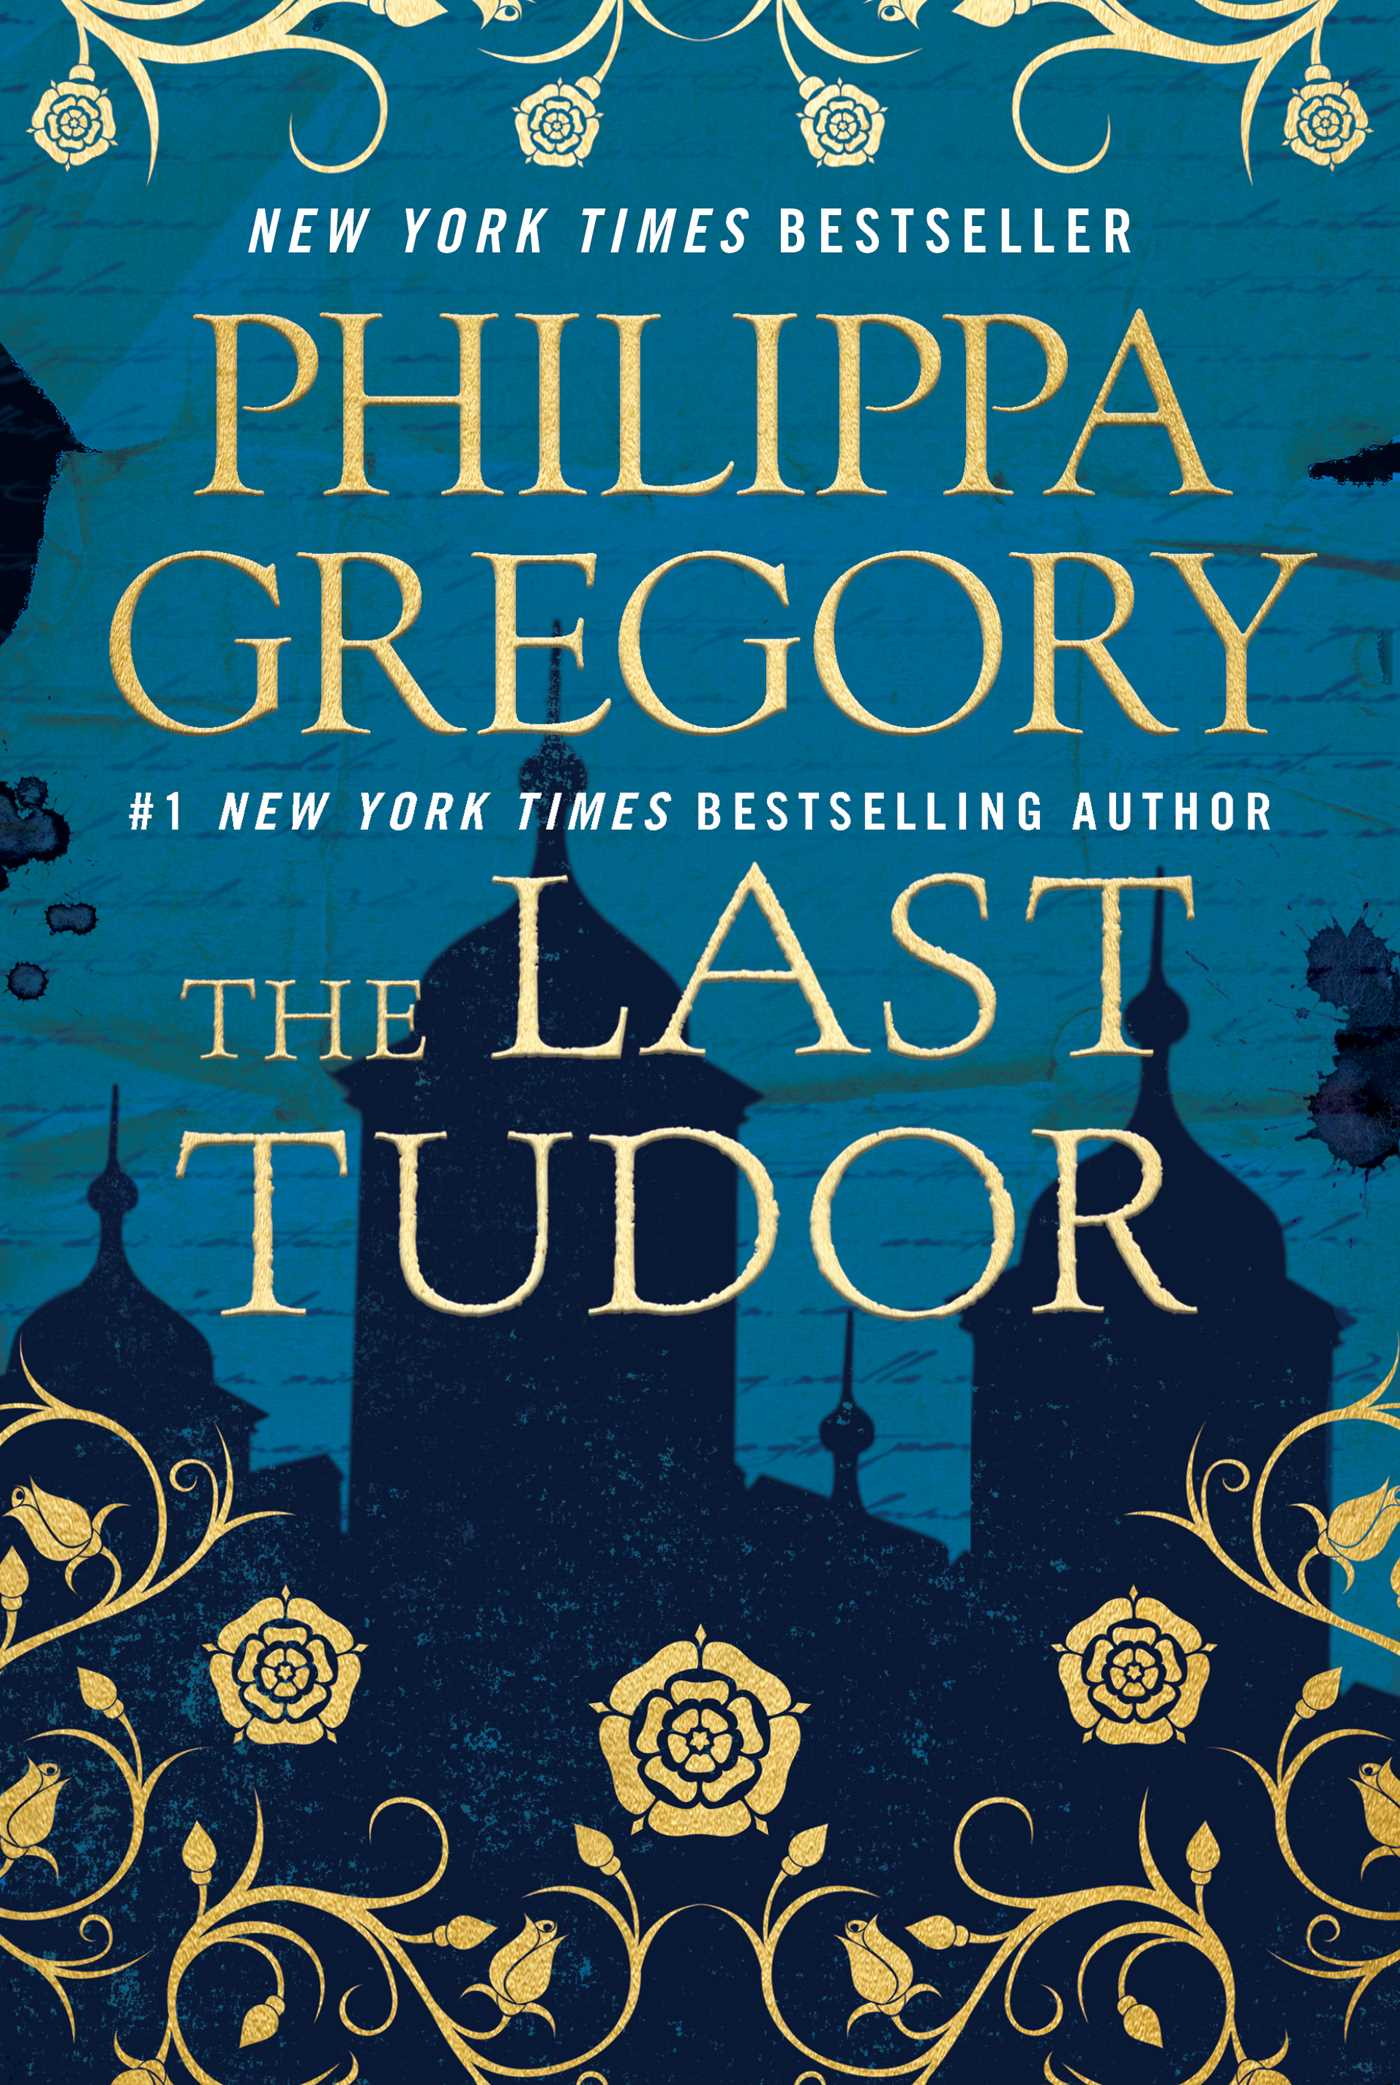 The last tudor 9781476758763 hr